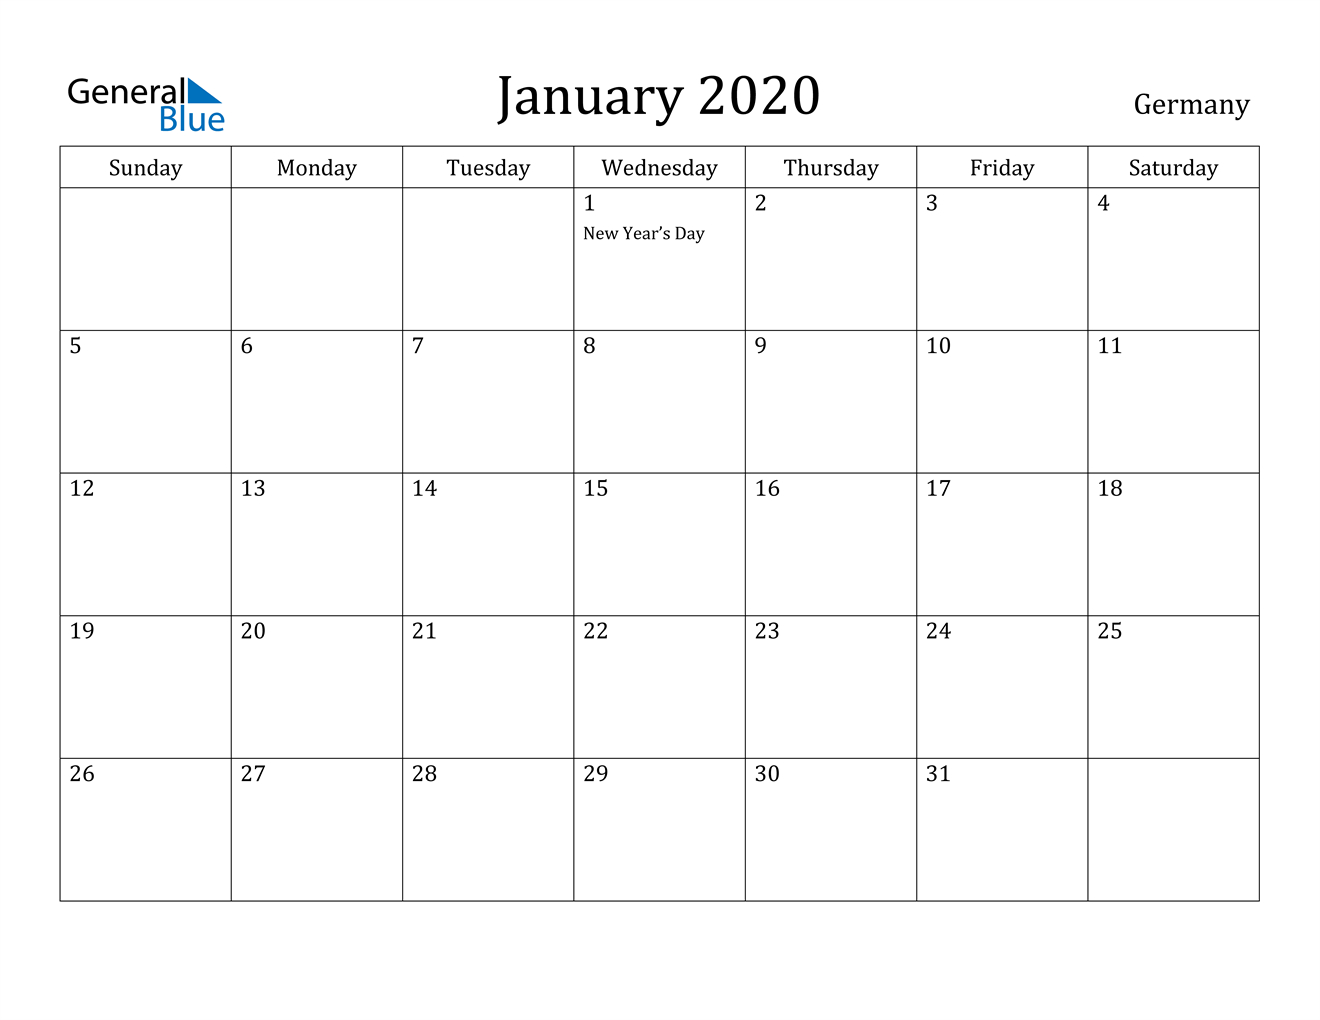 January 2020 Calendar  Germany pertaining to Calander January 2020